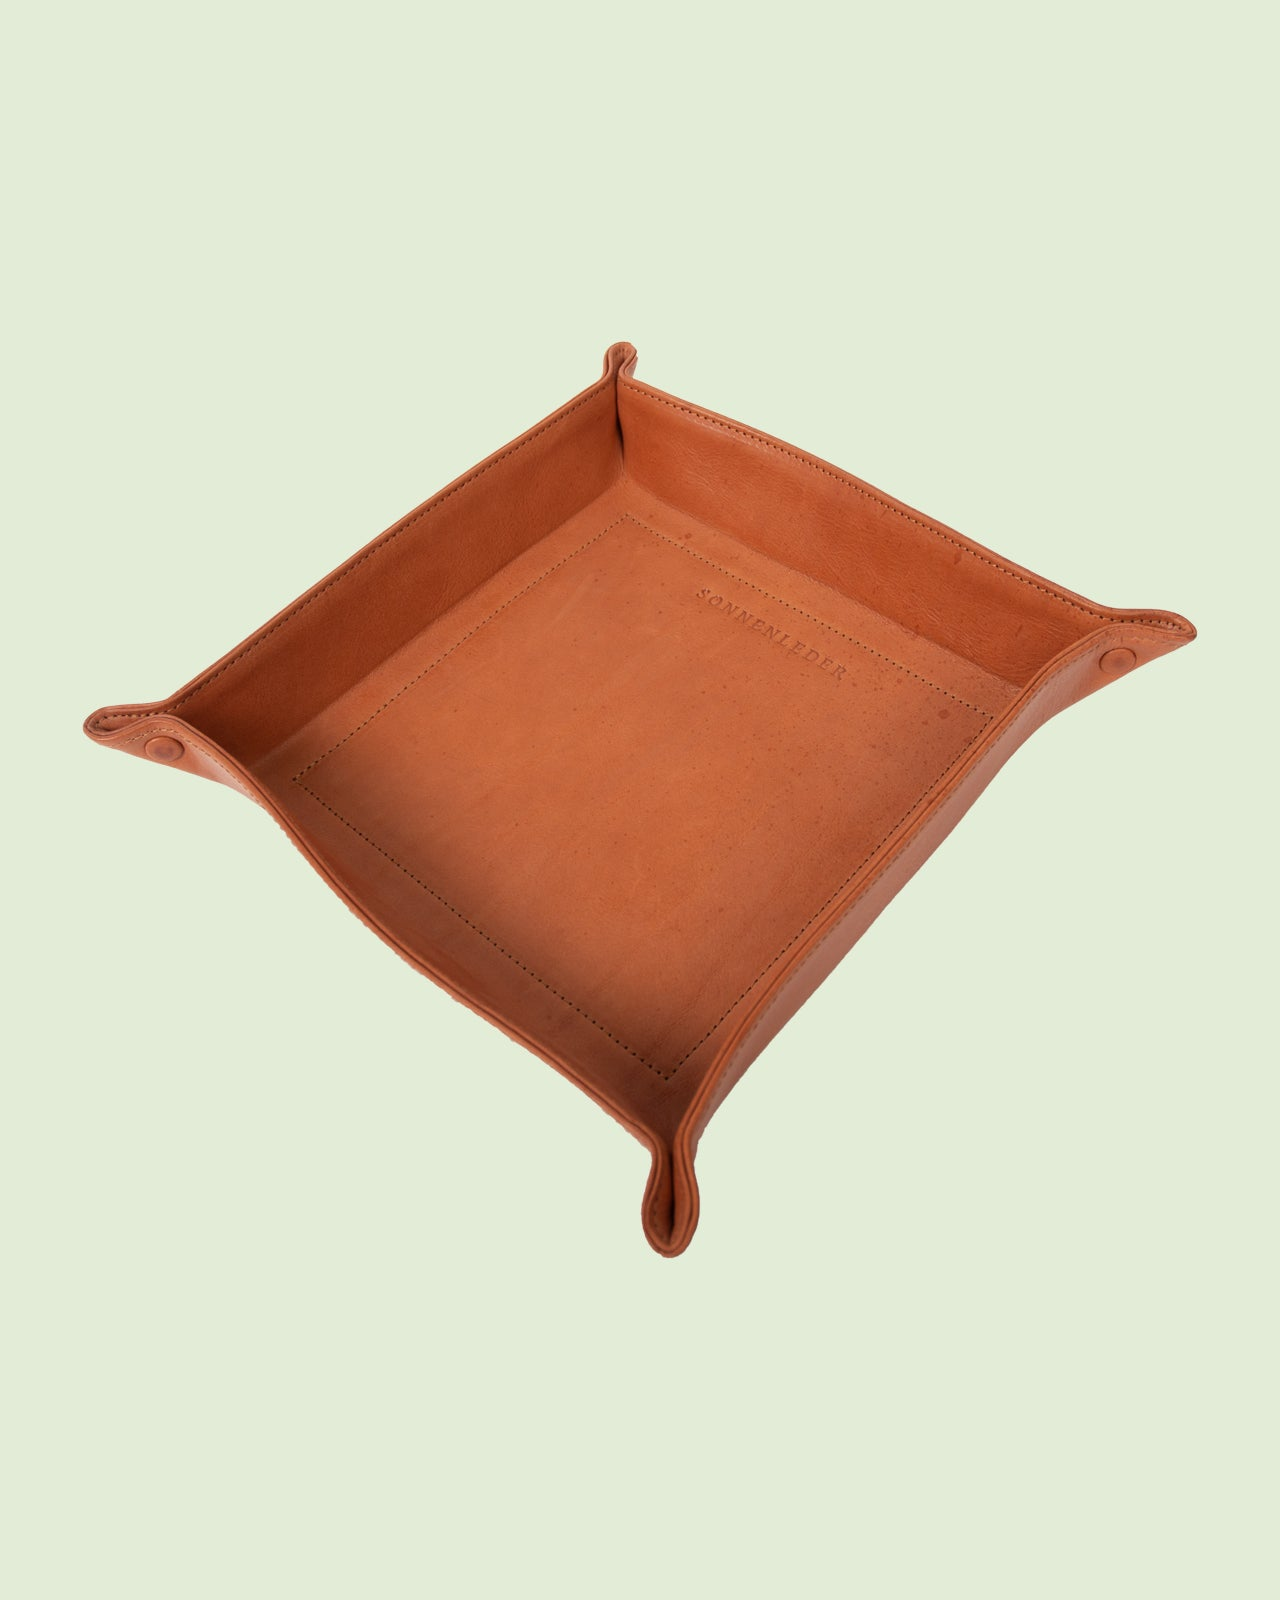 Sonnenleder Accessory Tray